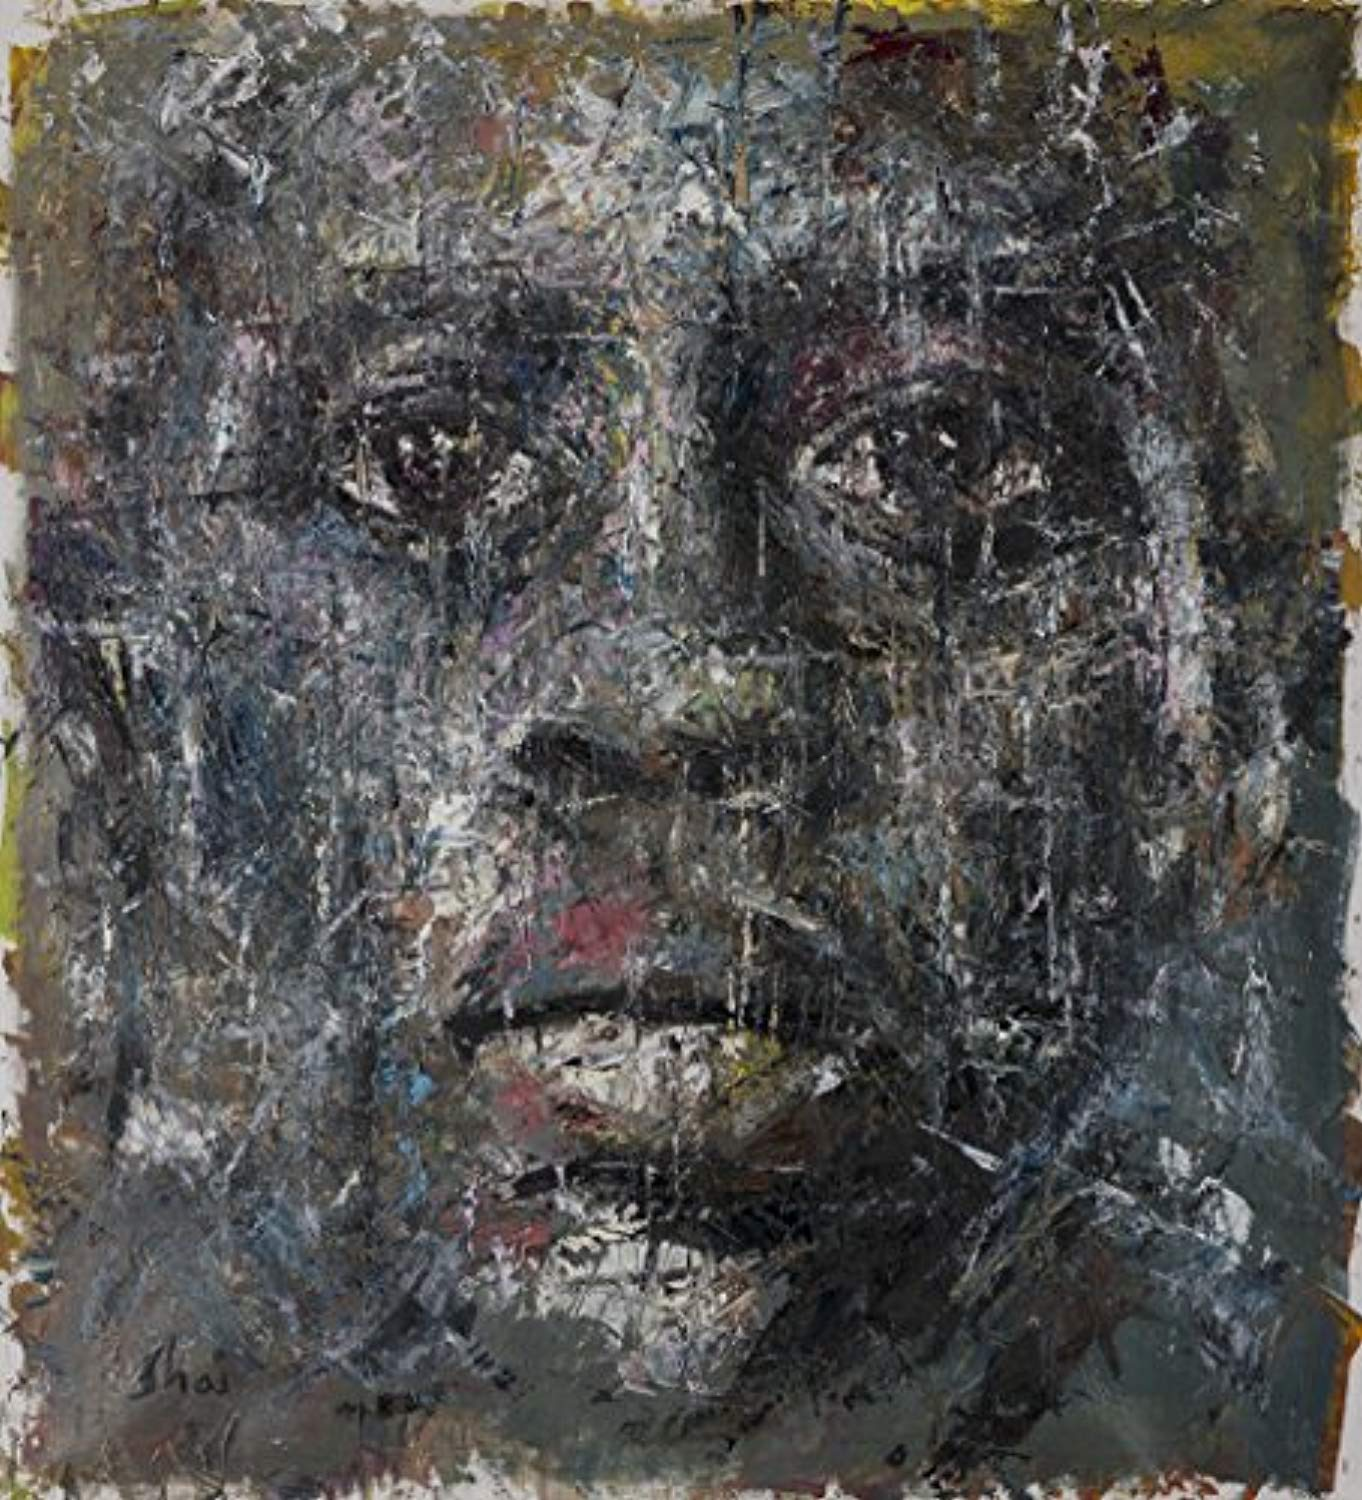 "Shai Yossef Special Extra extra-large print on canvas by the artist, wall art decor,decorative,Art Collectibles,african american man portrait 95/85cm (37.4""x33.47"") Oil paintings prints UNFRAMED - Ufumbuzi - Home"